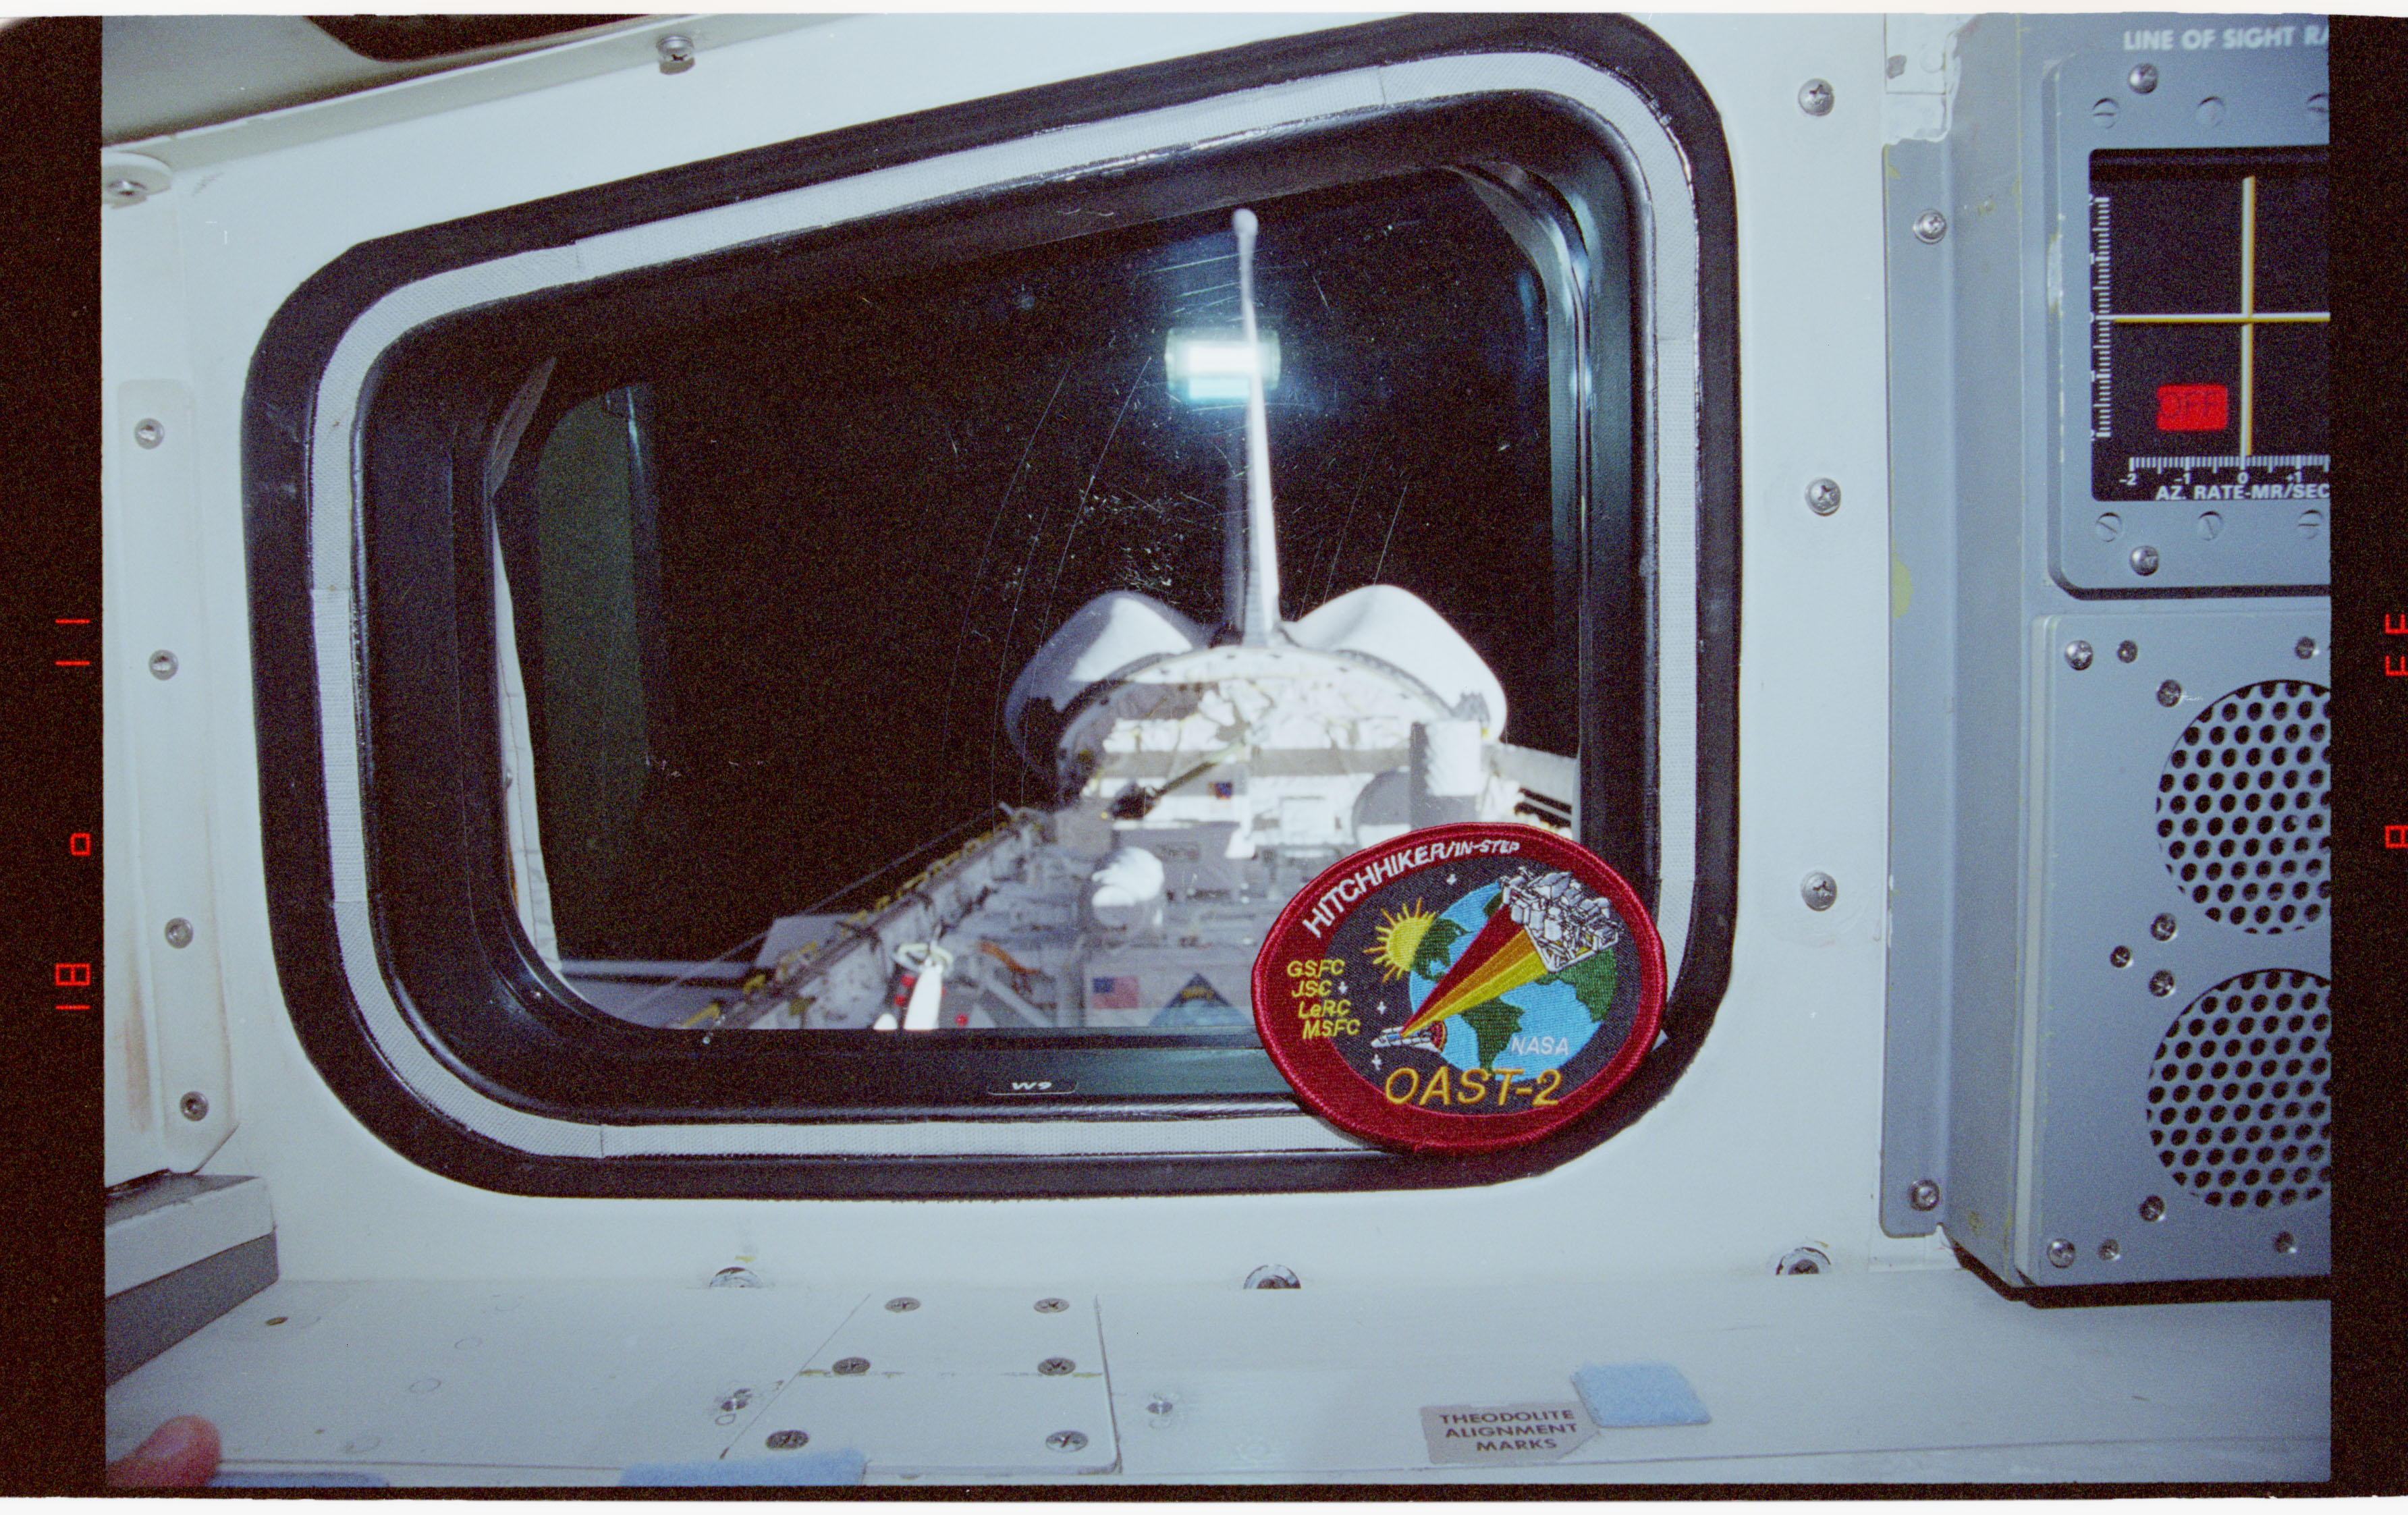 STS062-06-008 - STS-062 - View of OAST-2 in payload bay from window